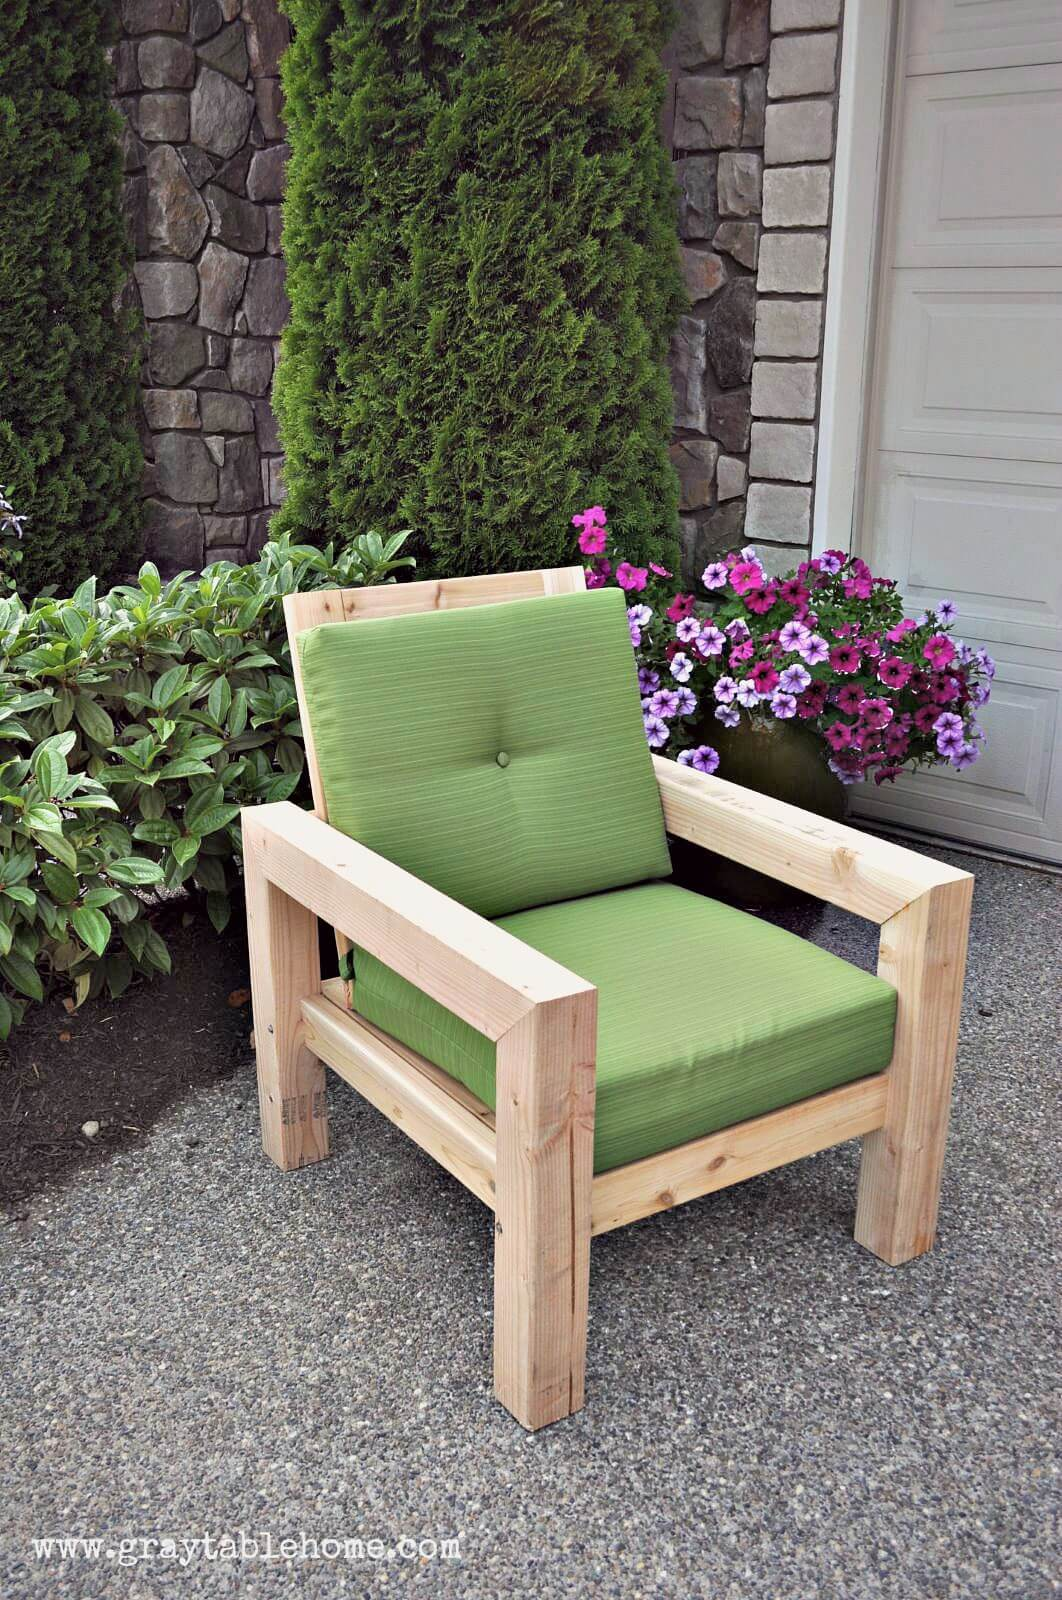 diy patio chairs chair slip covers in store 29 best outdoor furniture projects ideas and designs